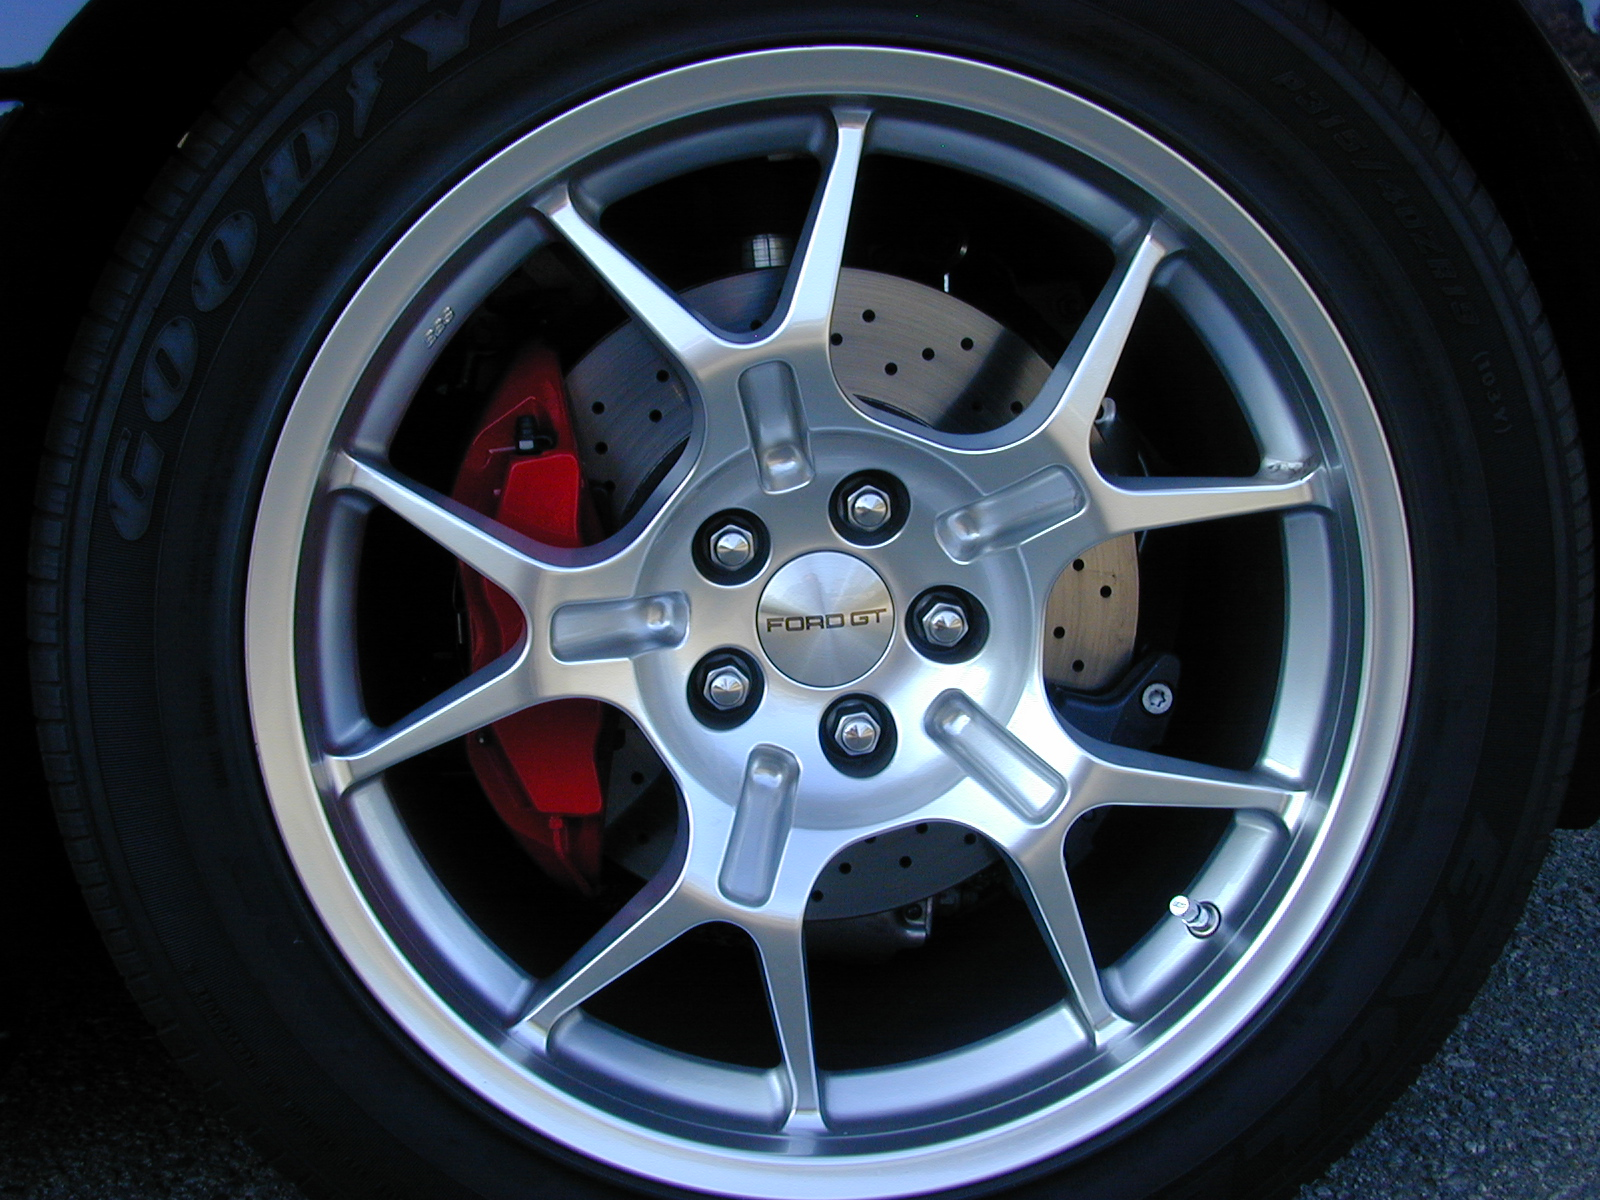 2005 Ford GT Long Term BBS Wheel